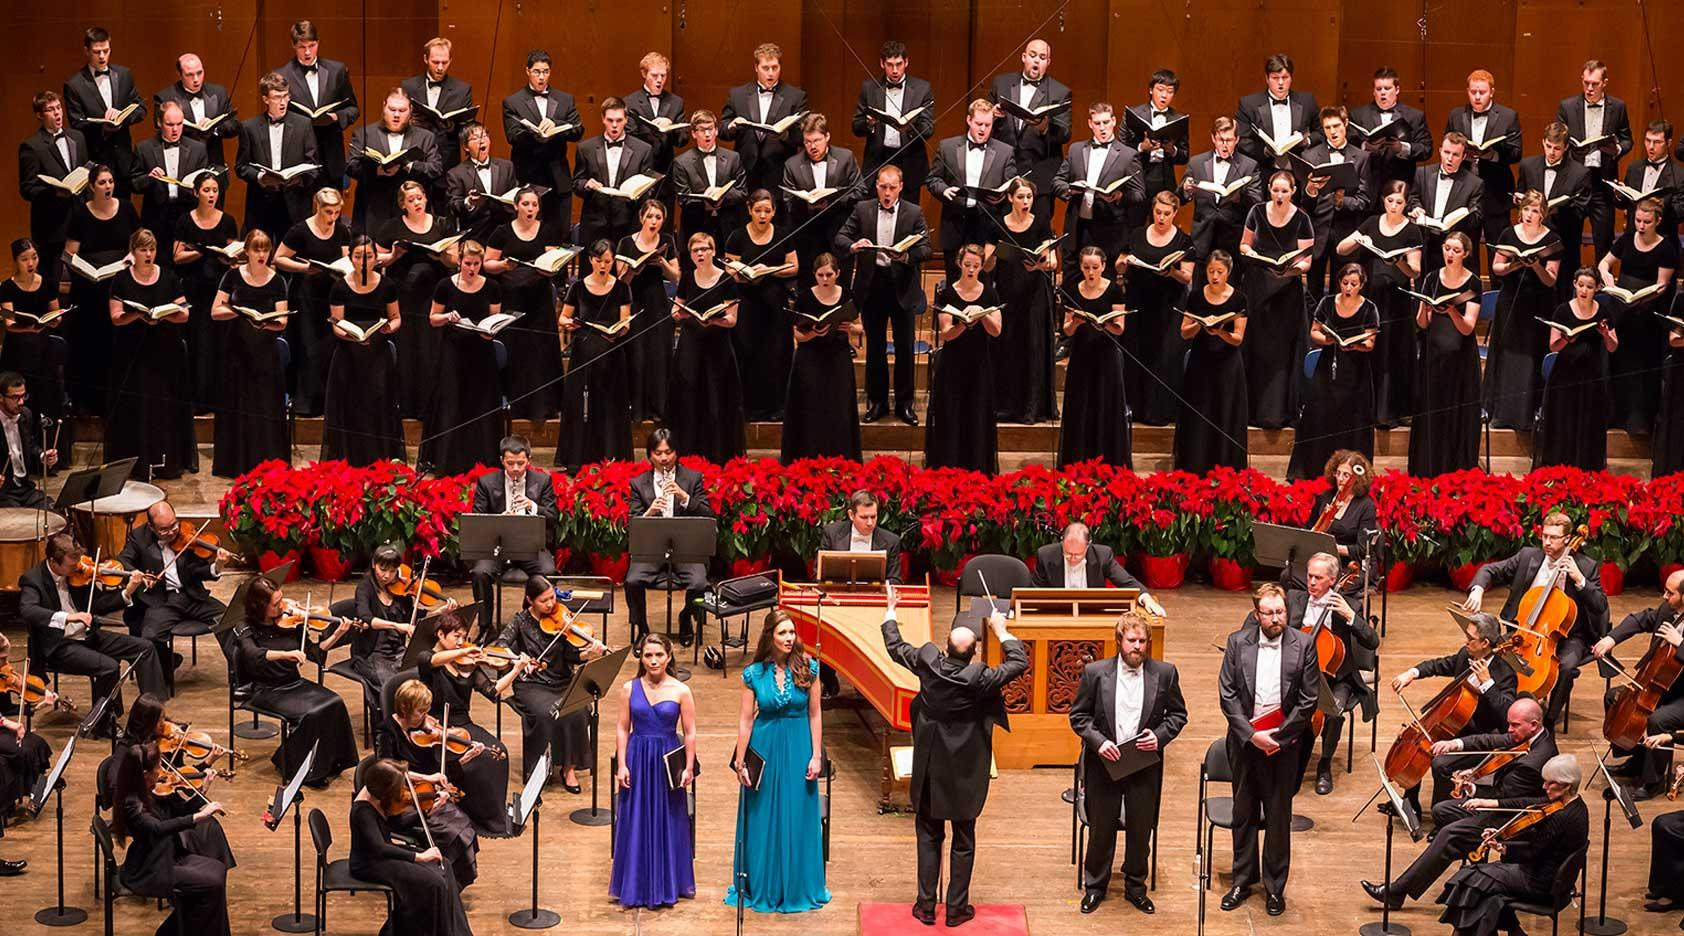 Mini Of Rochester >> Messiah from the New York Philharmonic, Sun 12/25 @ 3pm ...